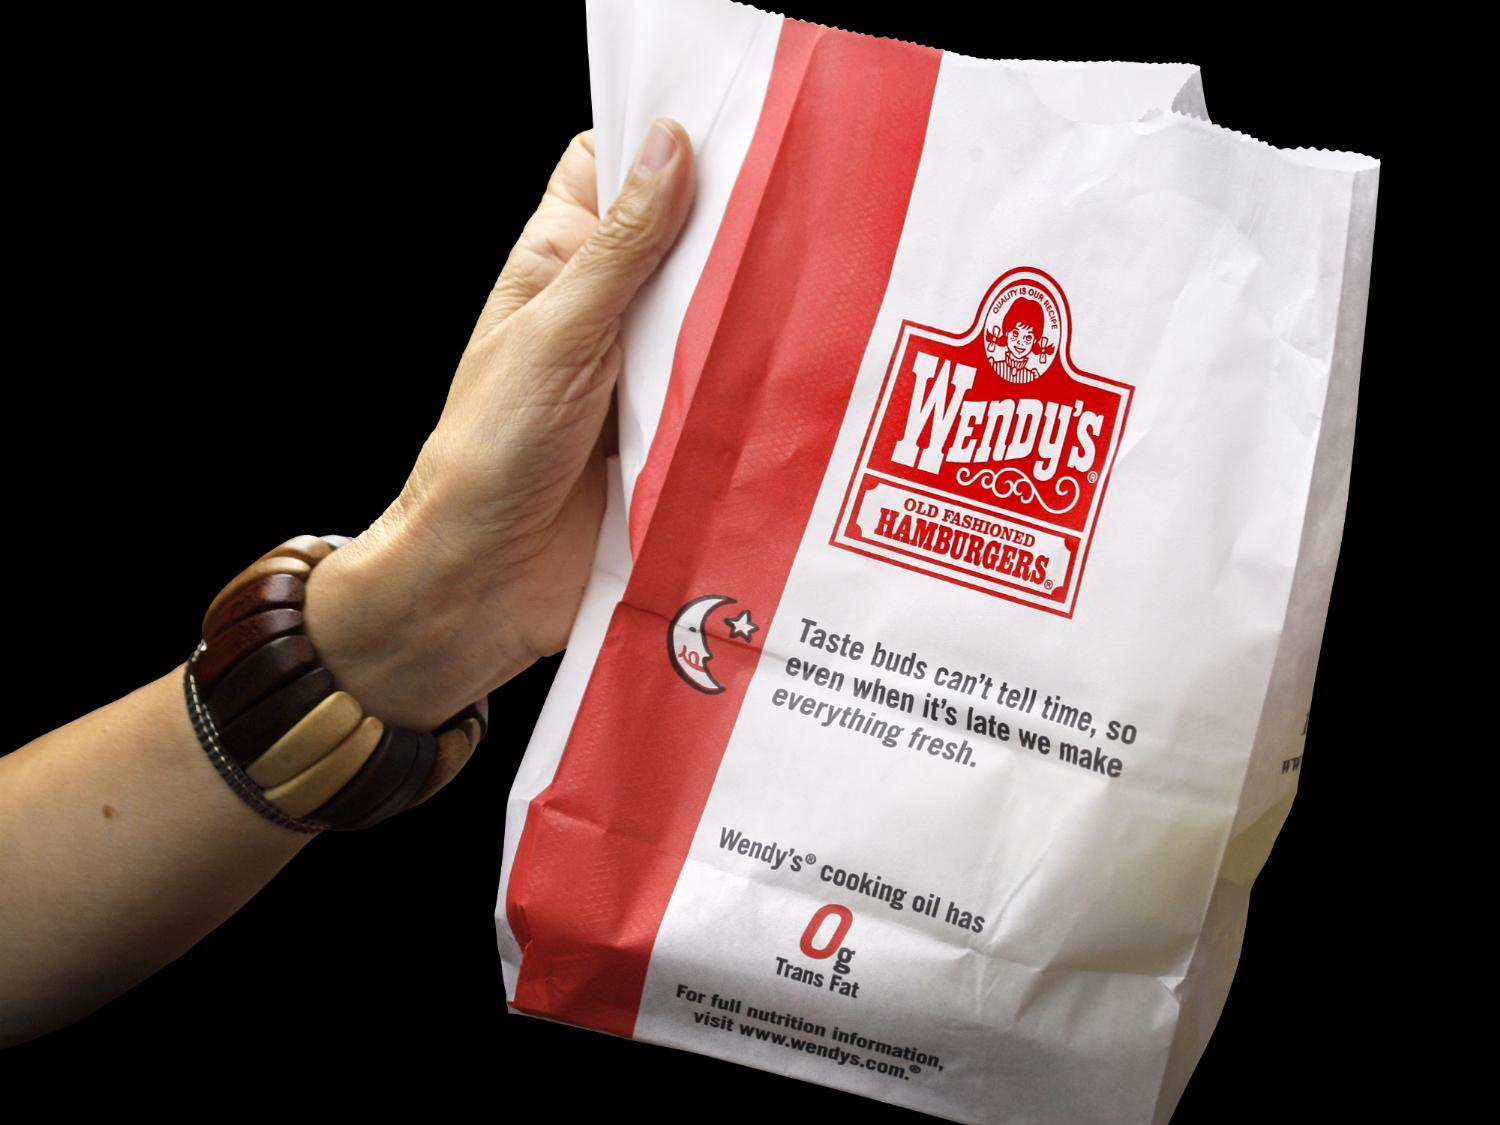 Wendy's gets ready to make one of its biggest changes since 1969